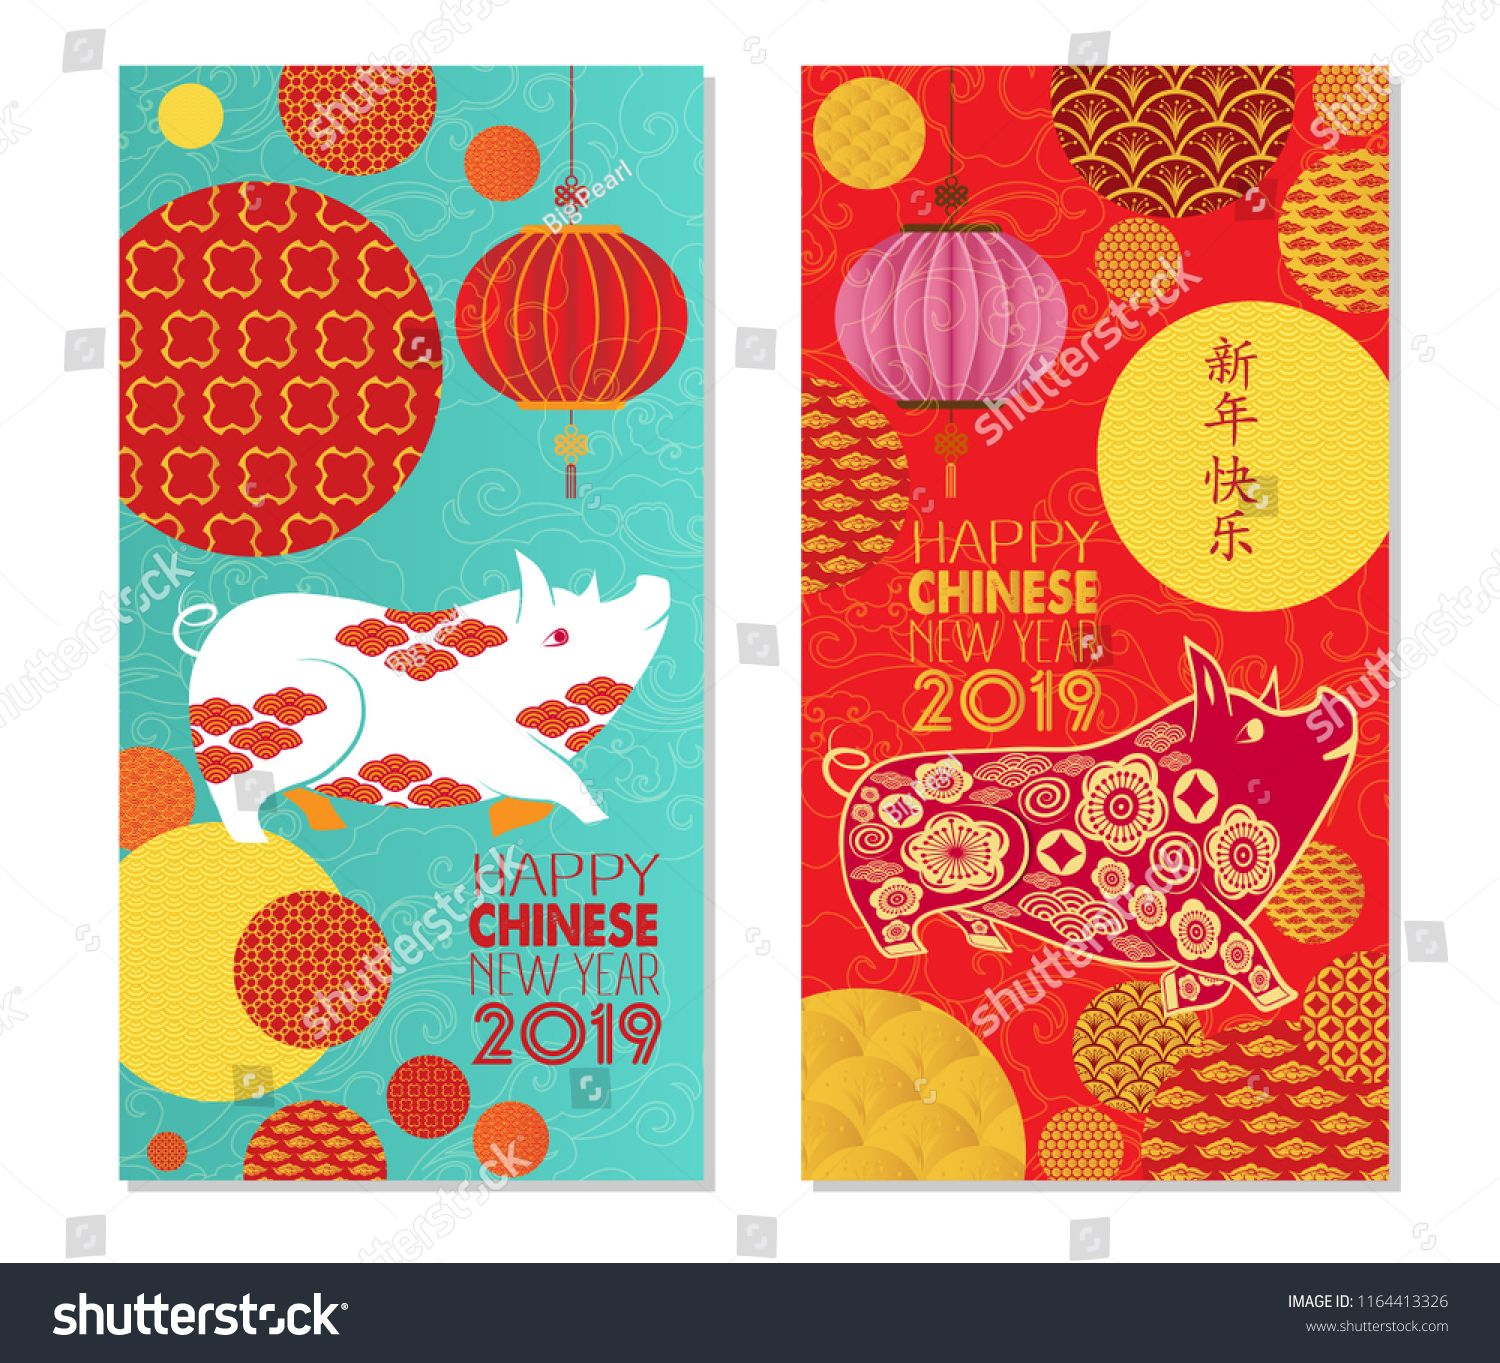 chinese new year banners set with patterns in red chinese characters mean happy new year